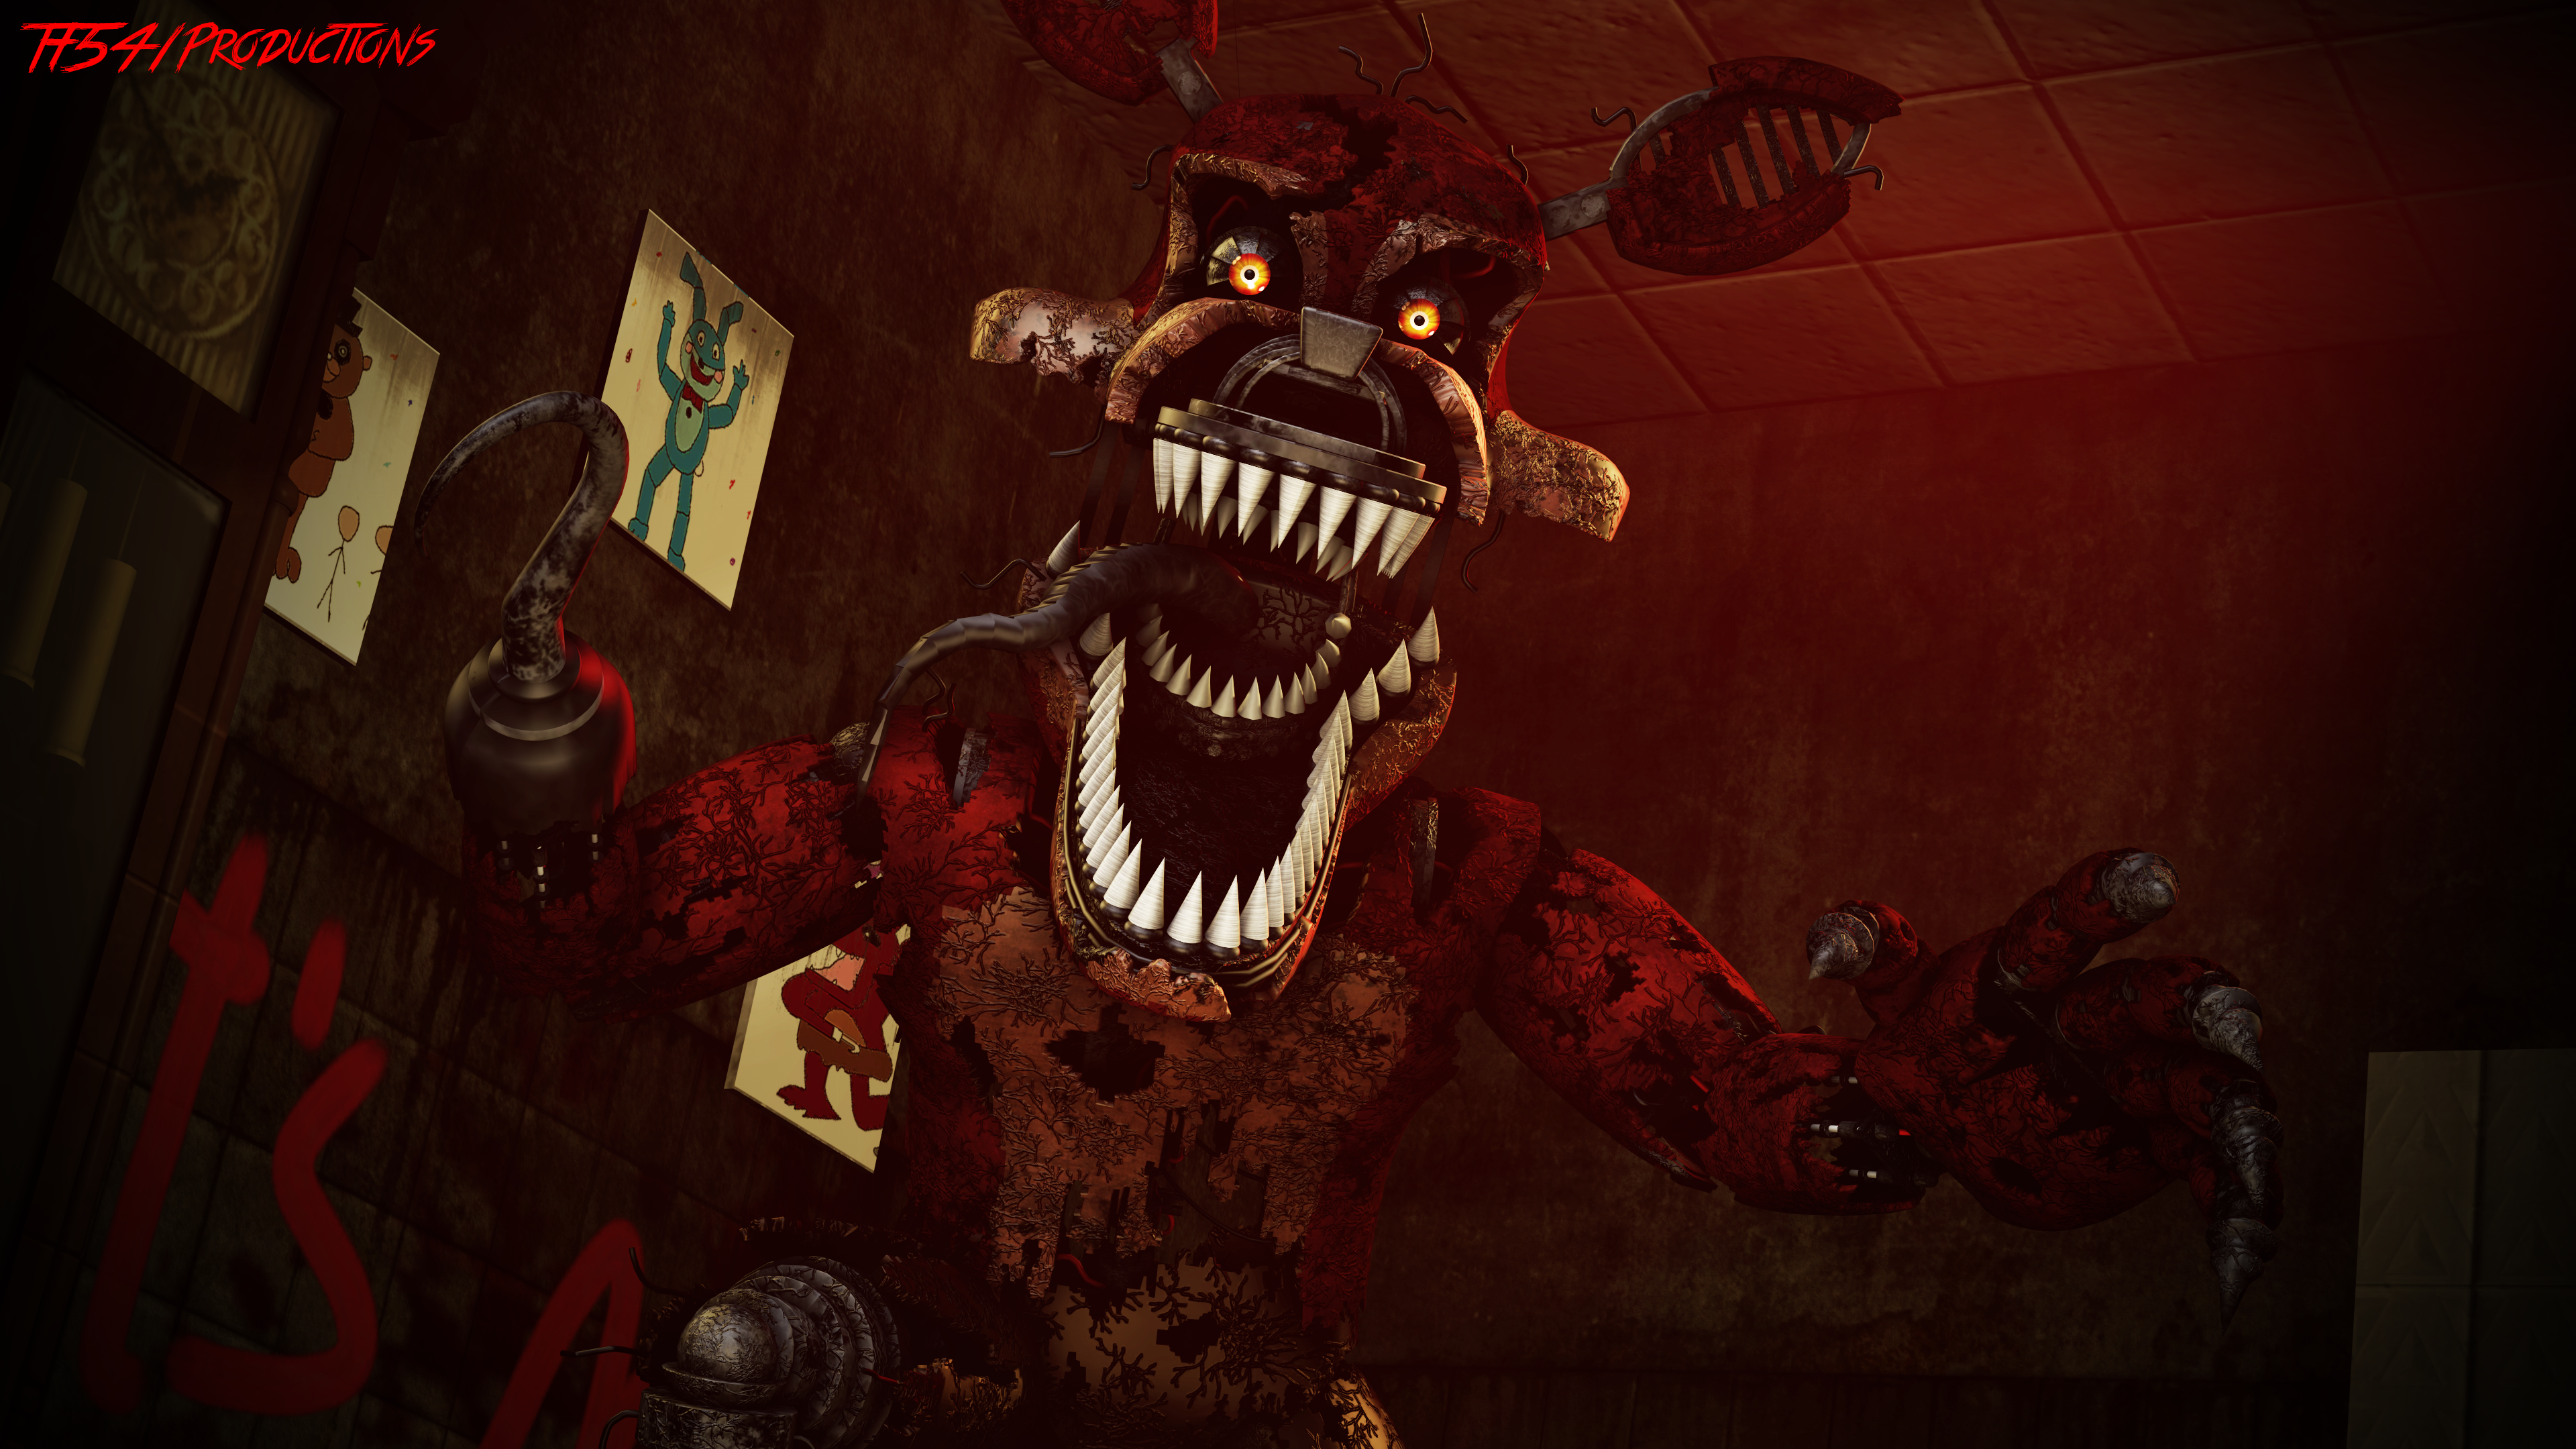 Nightmare Foxy v3 (By: HectorMKG) by TF541Productions